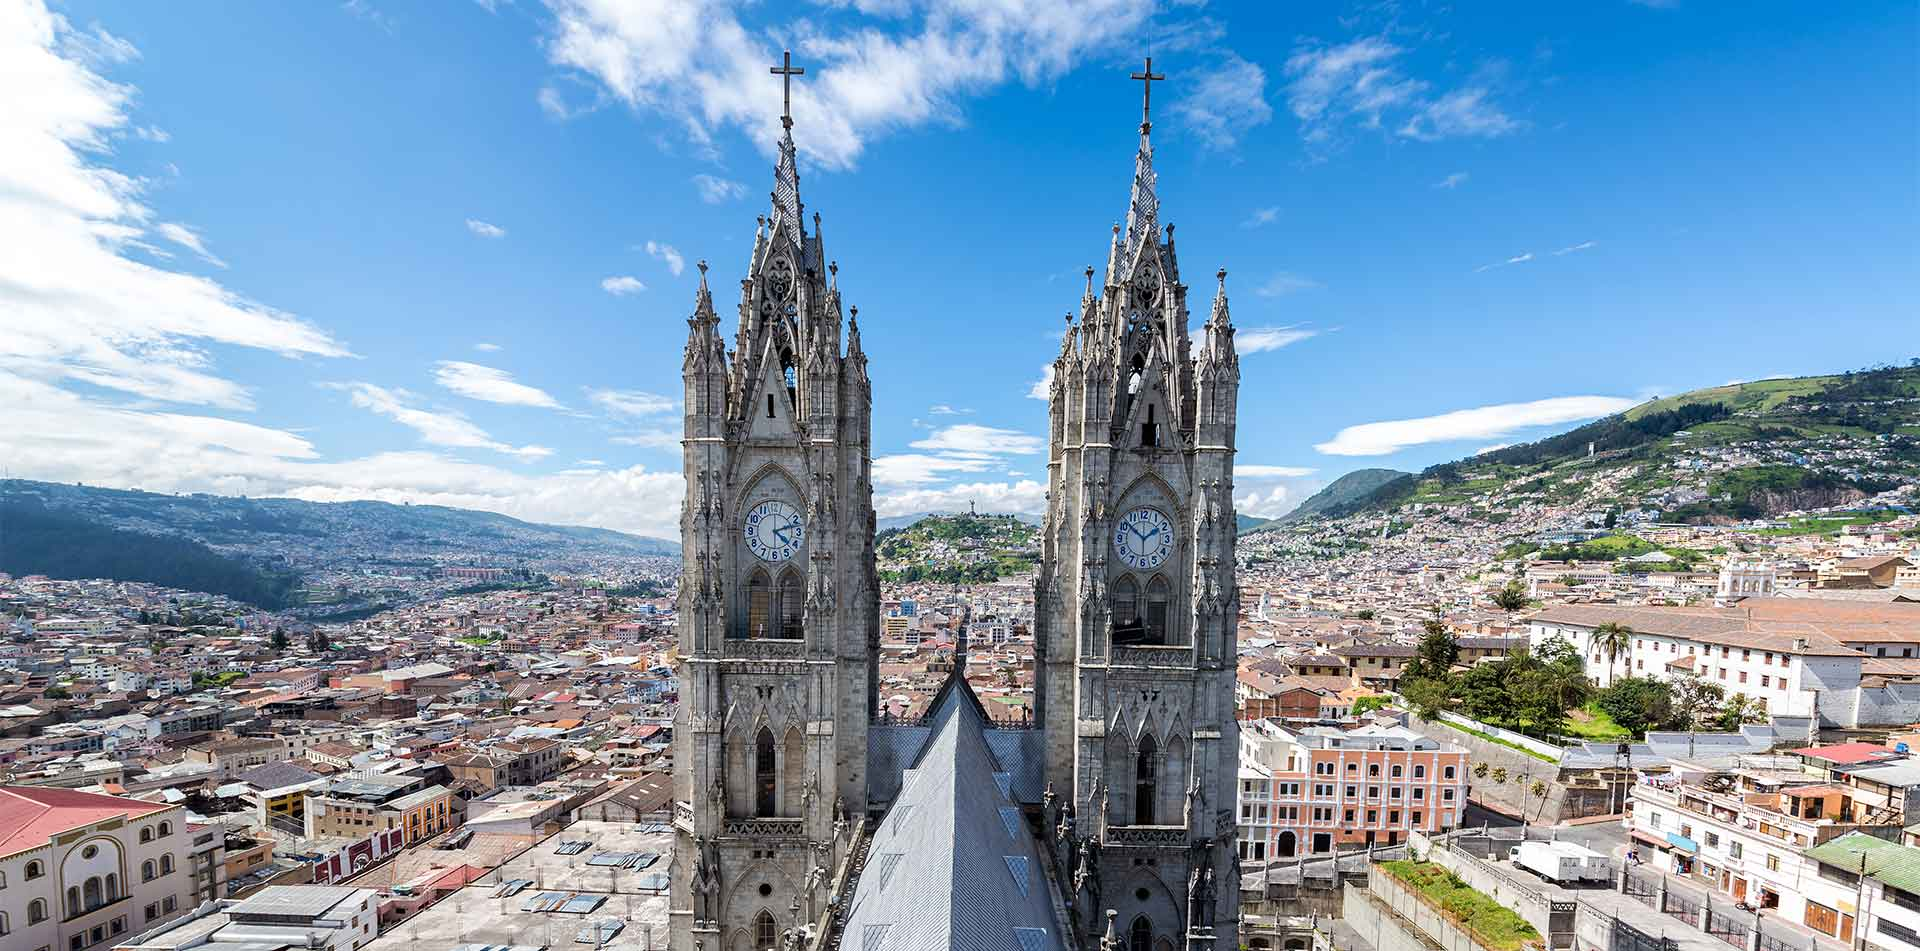 View of the towers of the Basilica in Quito